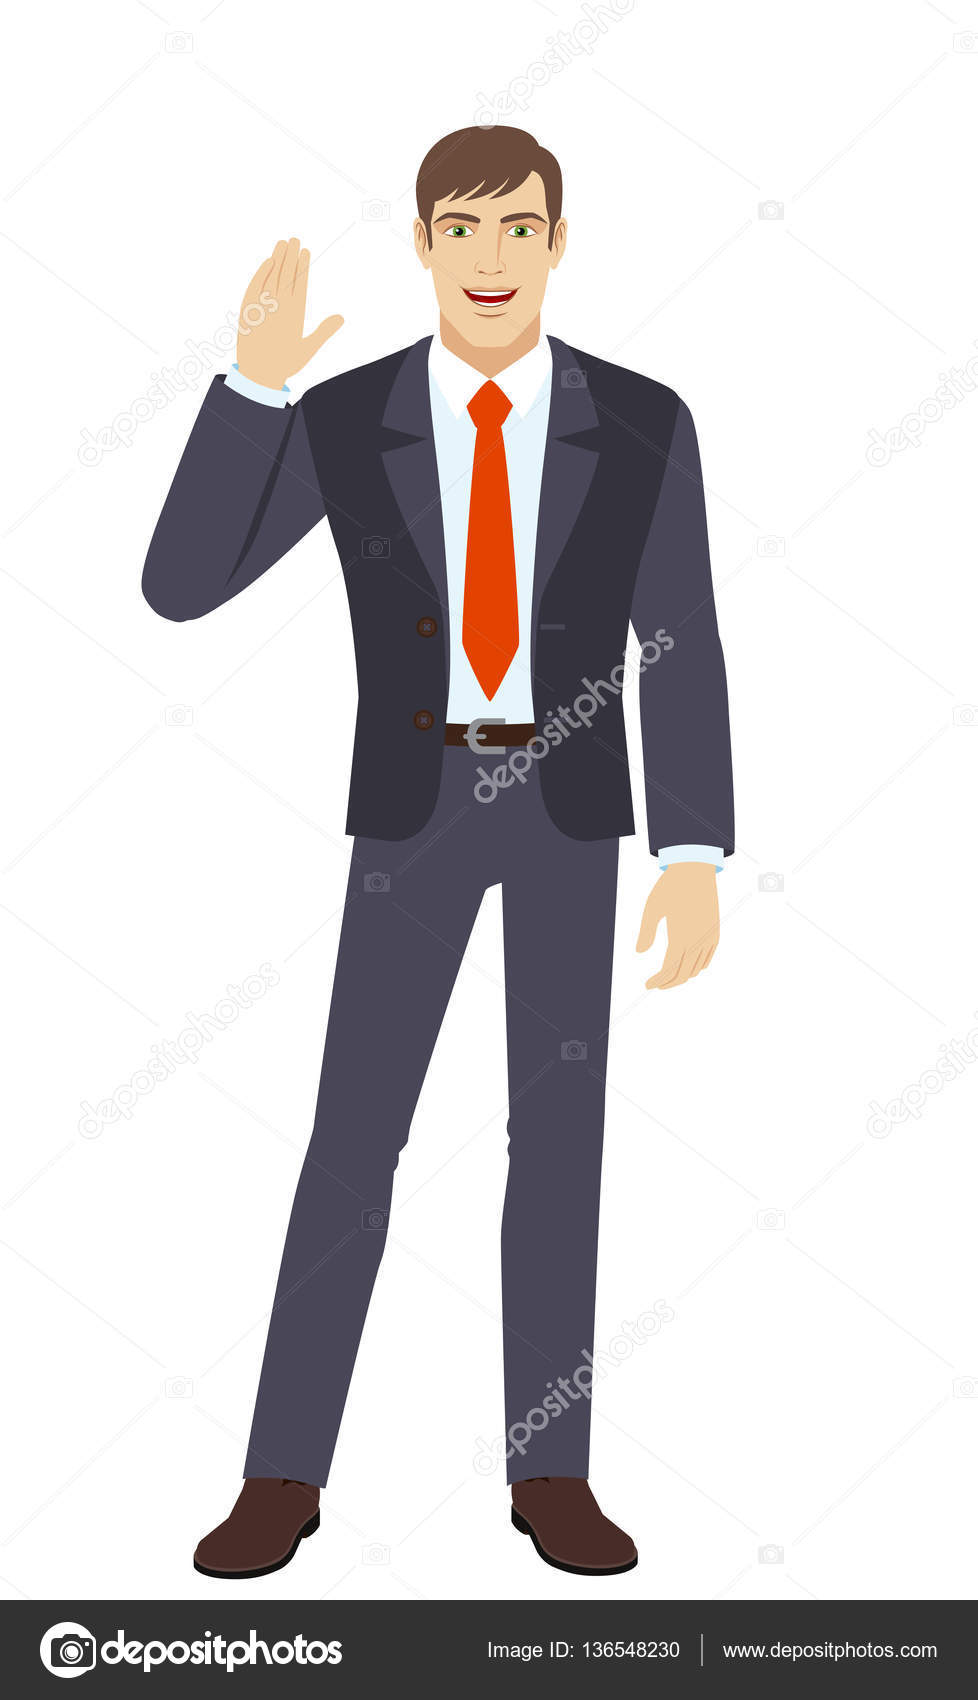 Businessman greeting someone stock vector komissar008 136548230 businessman greeting someone with his hand raised up full length portrait of businessman in a flat style vector illustration vector by komissar008 m4hsunfo